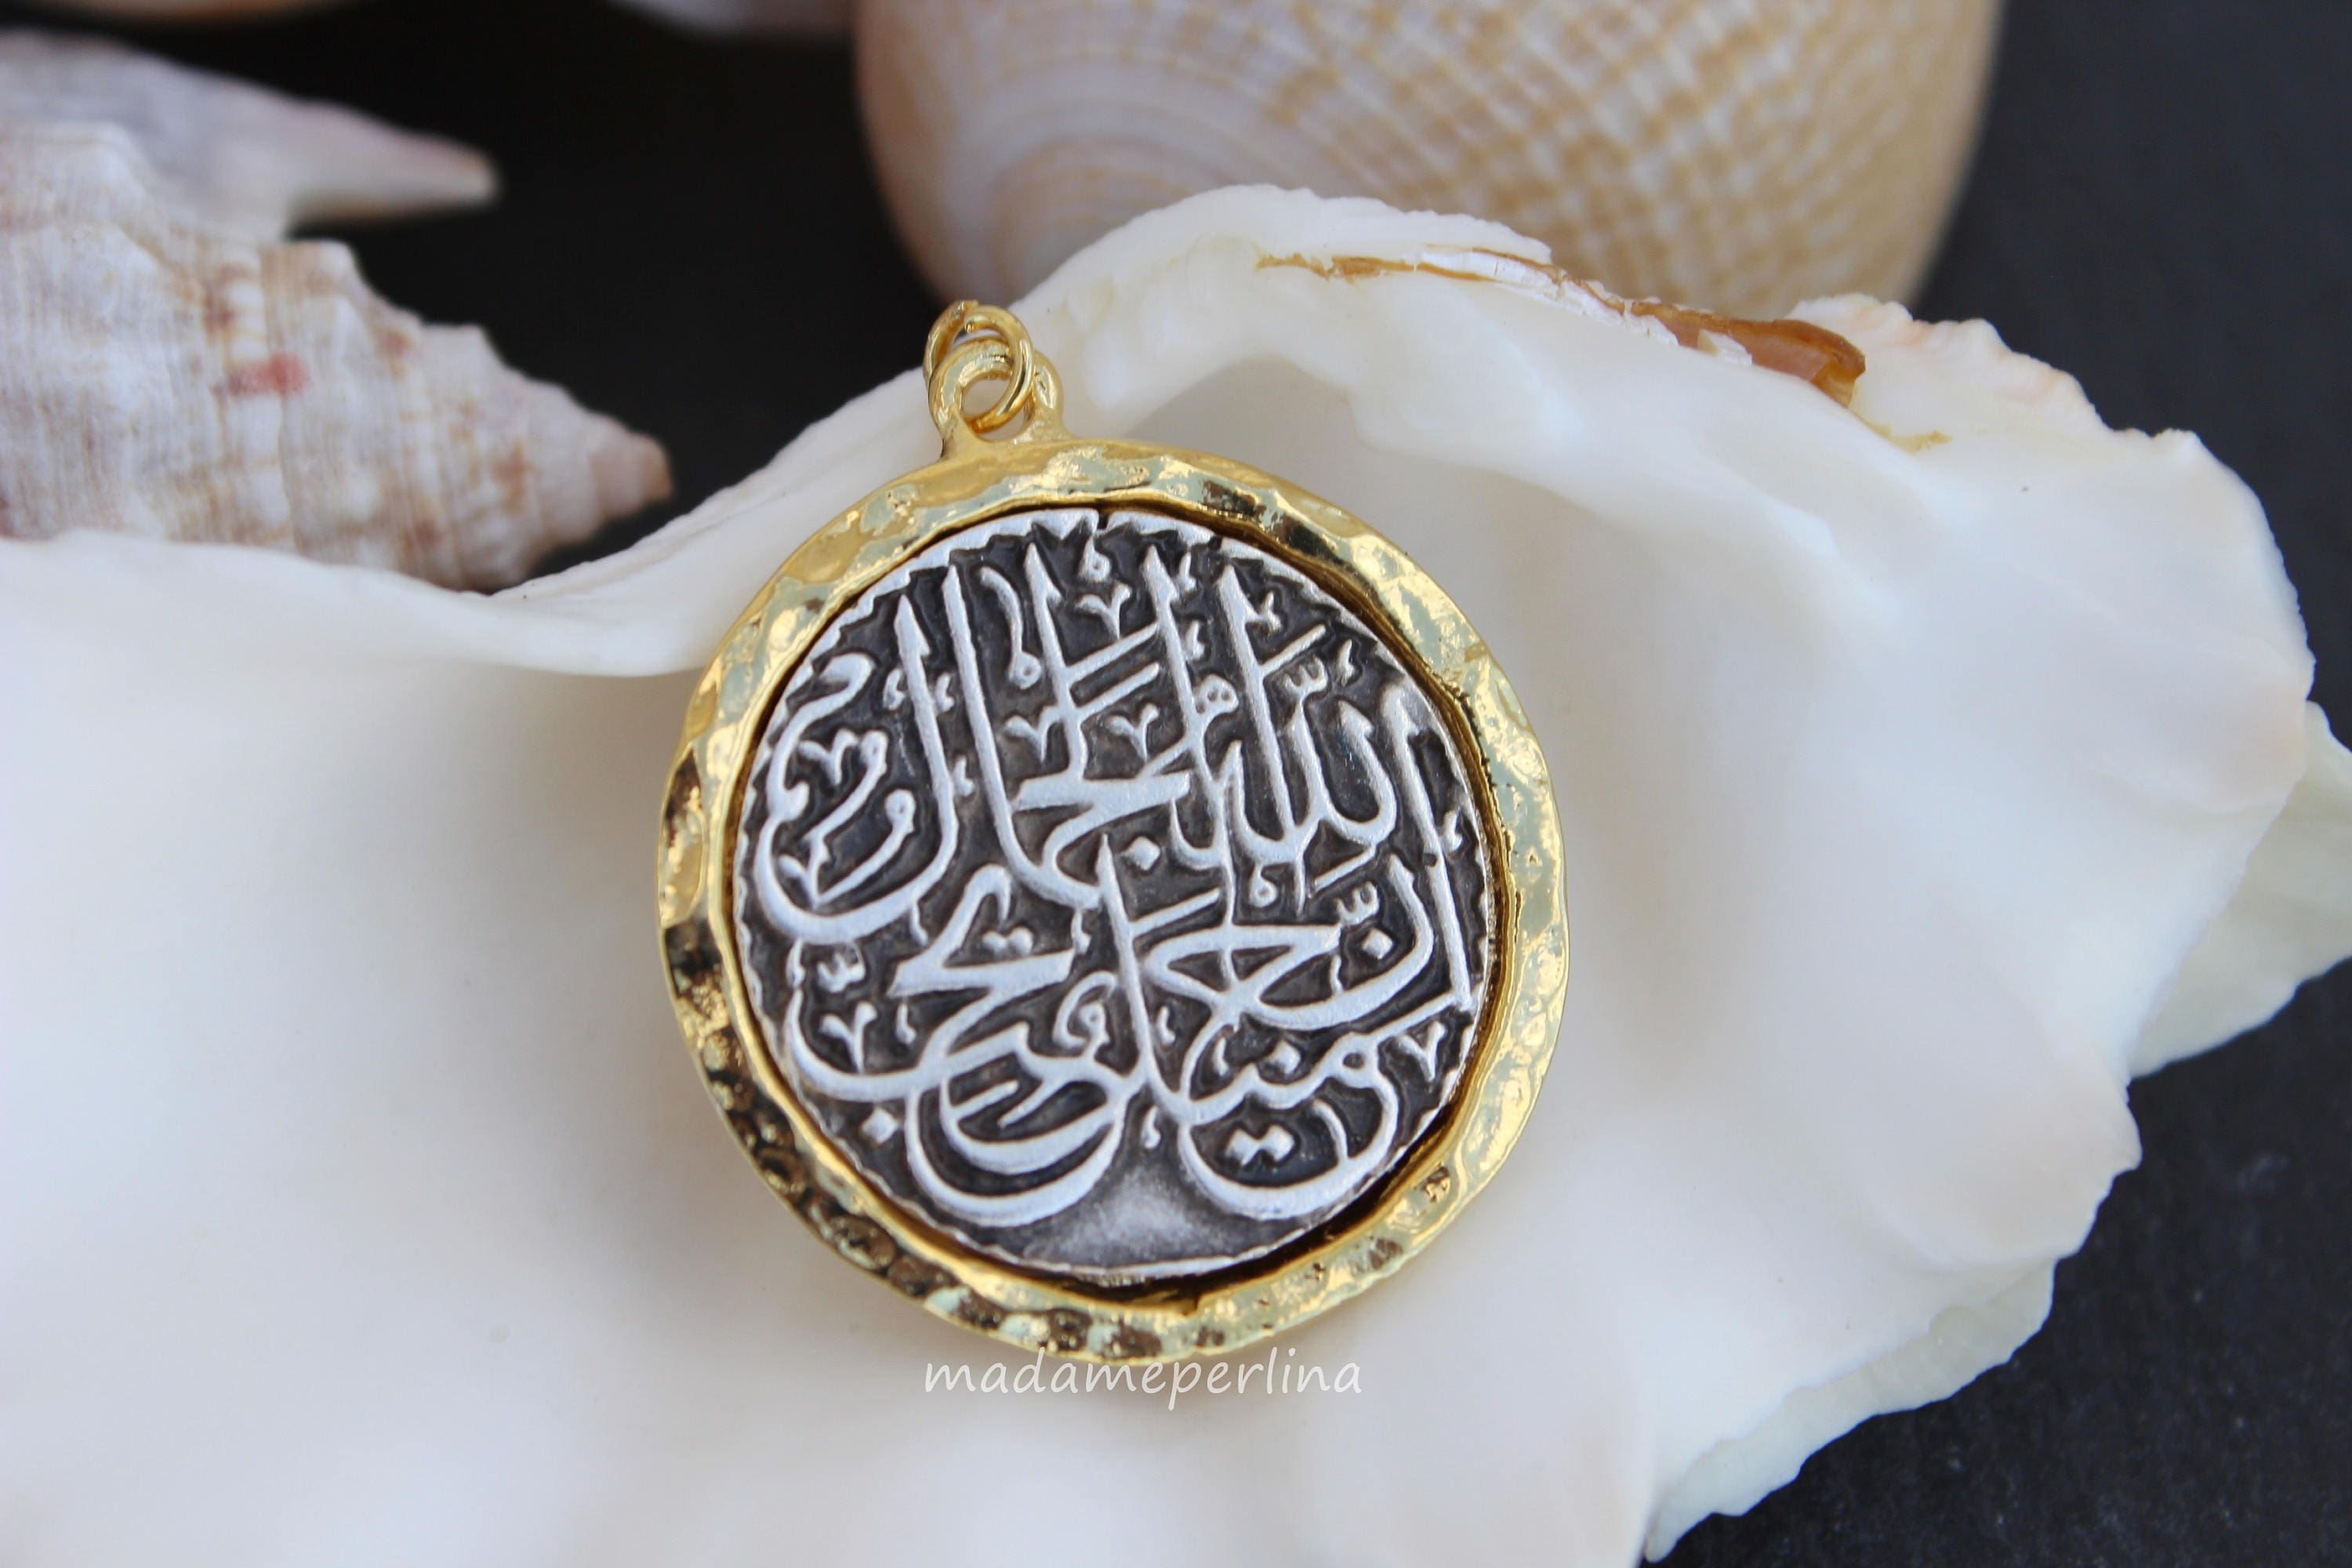 online products powered ingoldwetrust arabic original store silver img god necklace